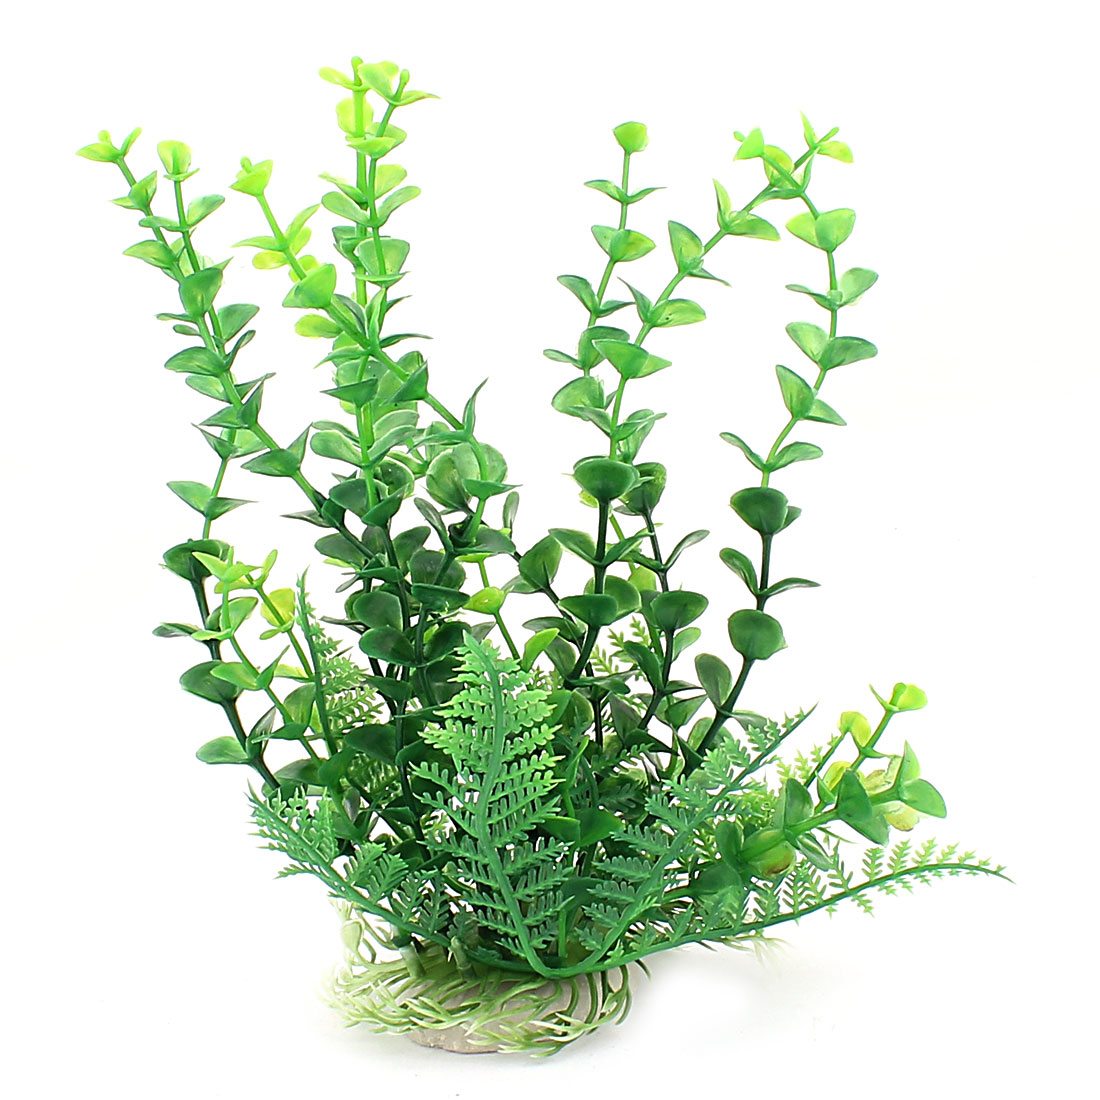 Plastic Grass Adorn Manmade Aquascape Aquarium Sea Plant 20cm High